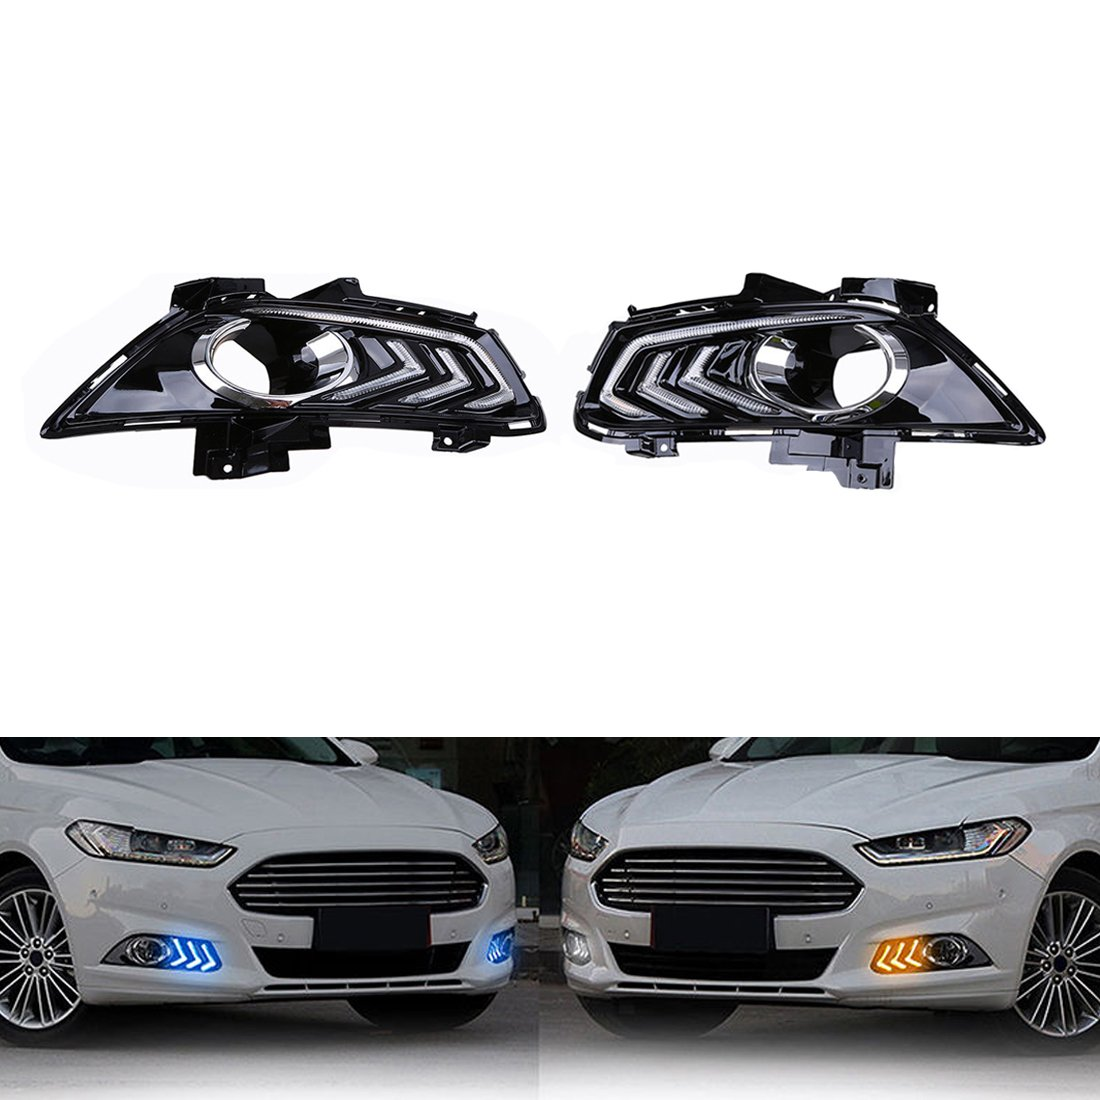 Cheap Ford Fusion Fog Light, find Ford Fusion Fog Light